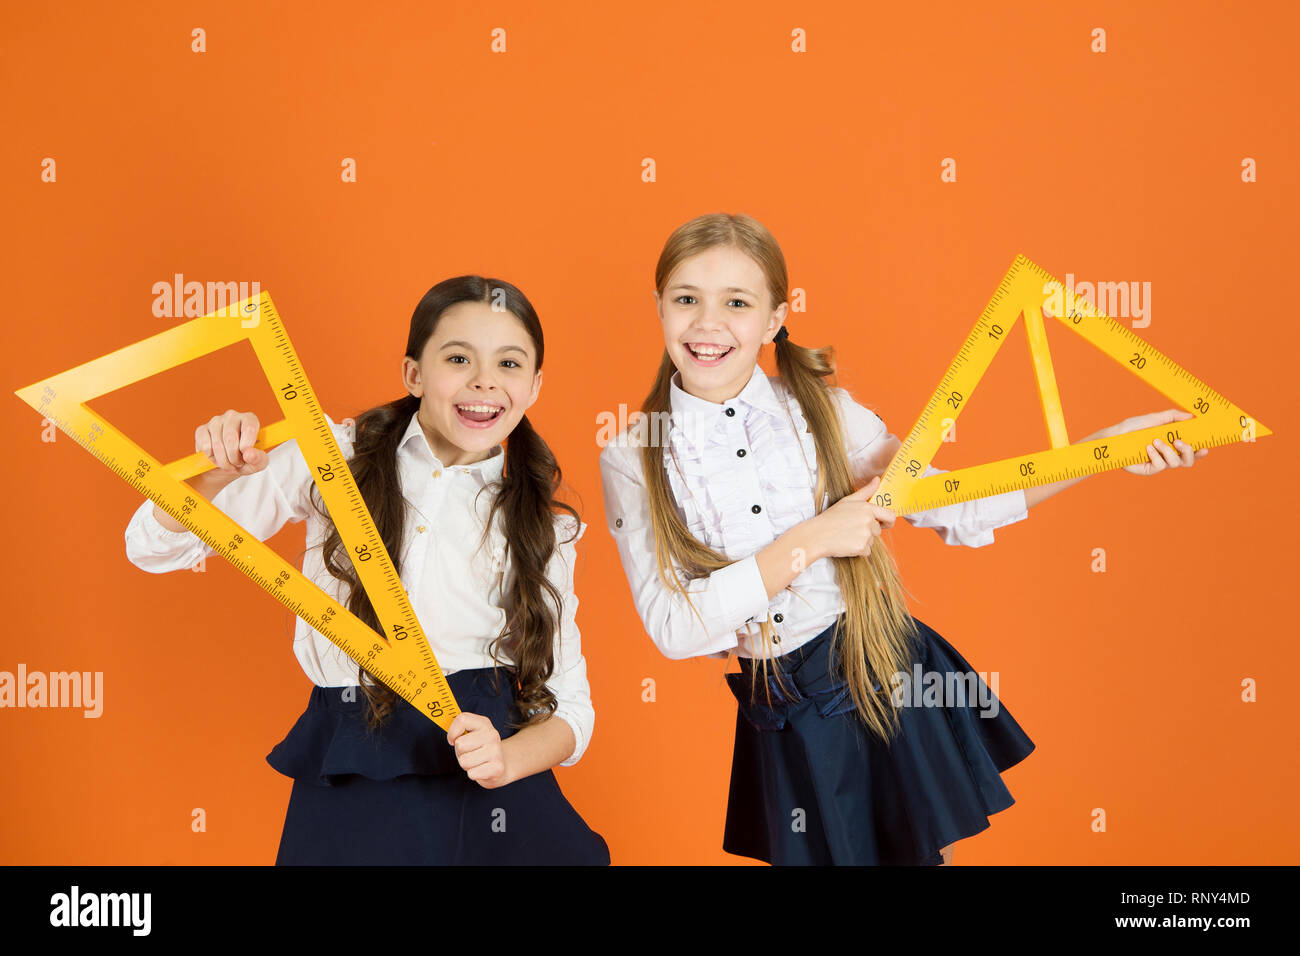 Kids school uniform on orange background. Pupil cute girls with big rulers. Geometry school subject. Drawing with ruler chalkboard. Education and school concept. School students learning geometry. - Stock Image